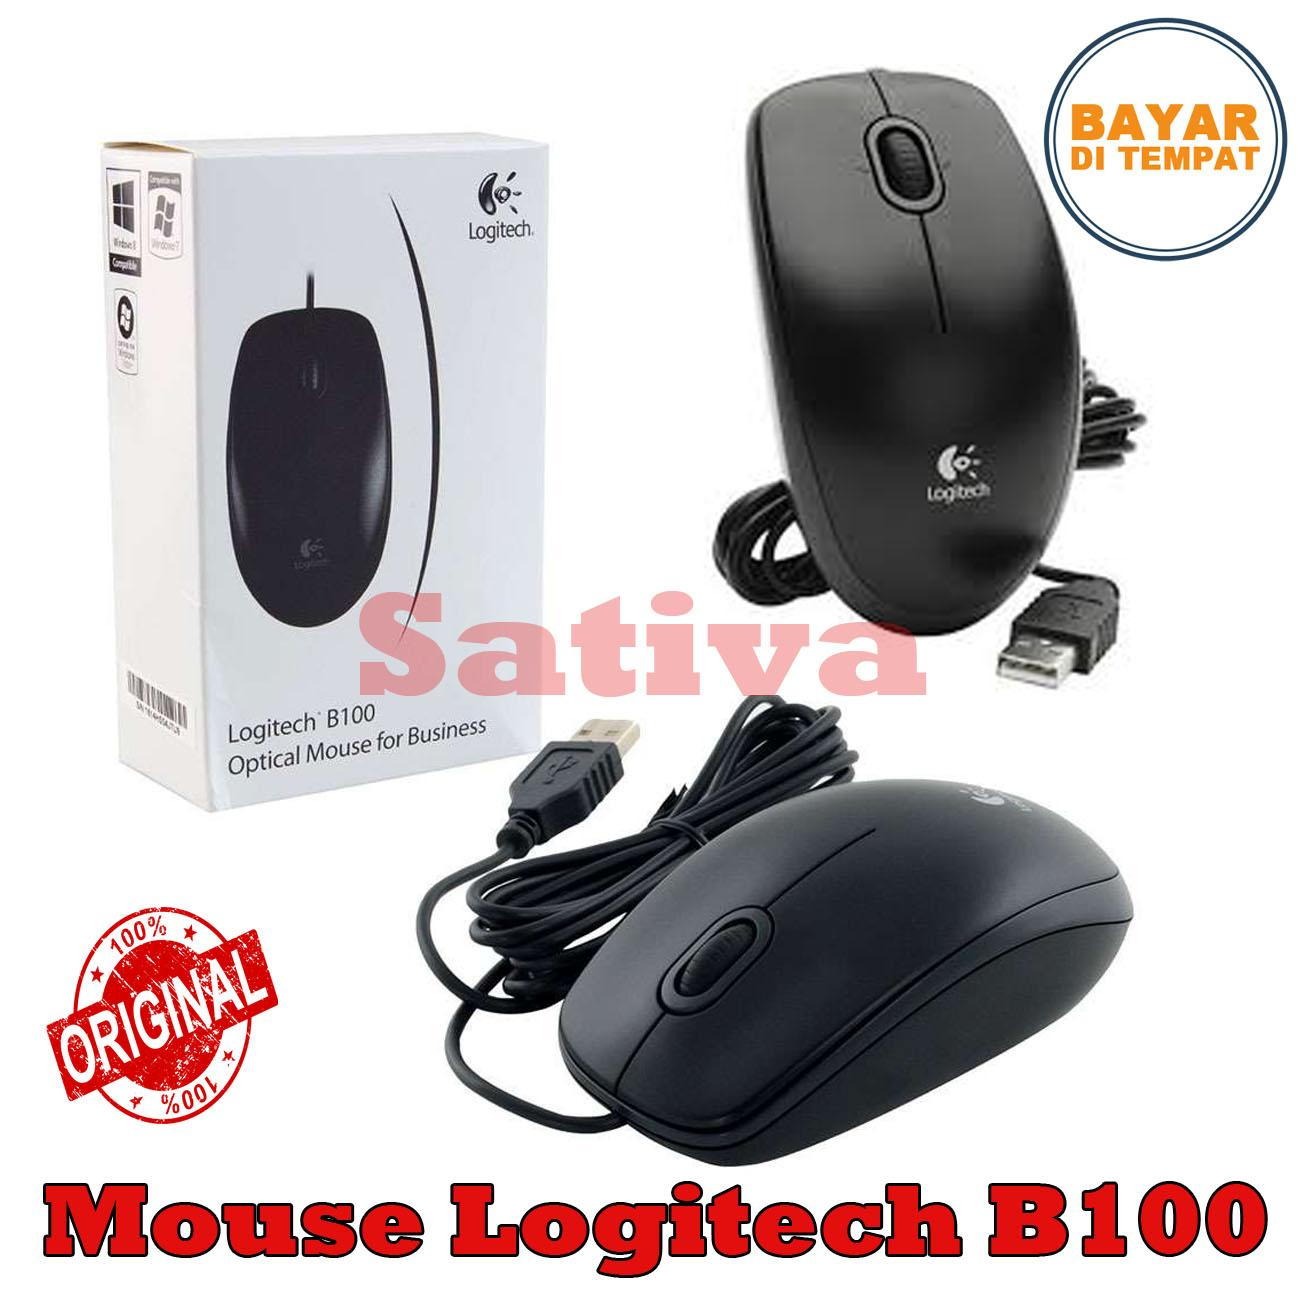 https://www.lazada.co.id/products/mouse-logitech-b100-mouse-b100-mouse-optical-usb-i538076966-s741758742.html